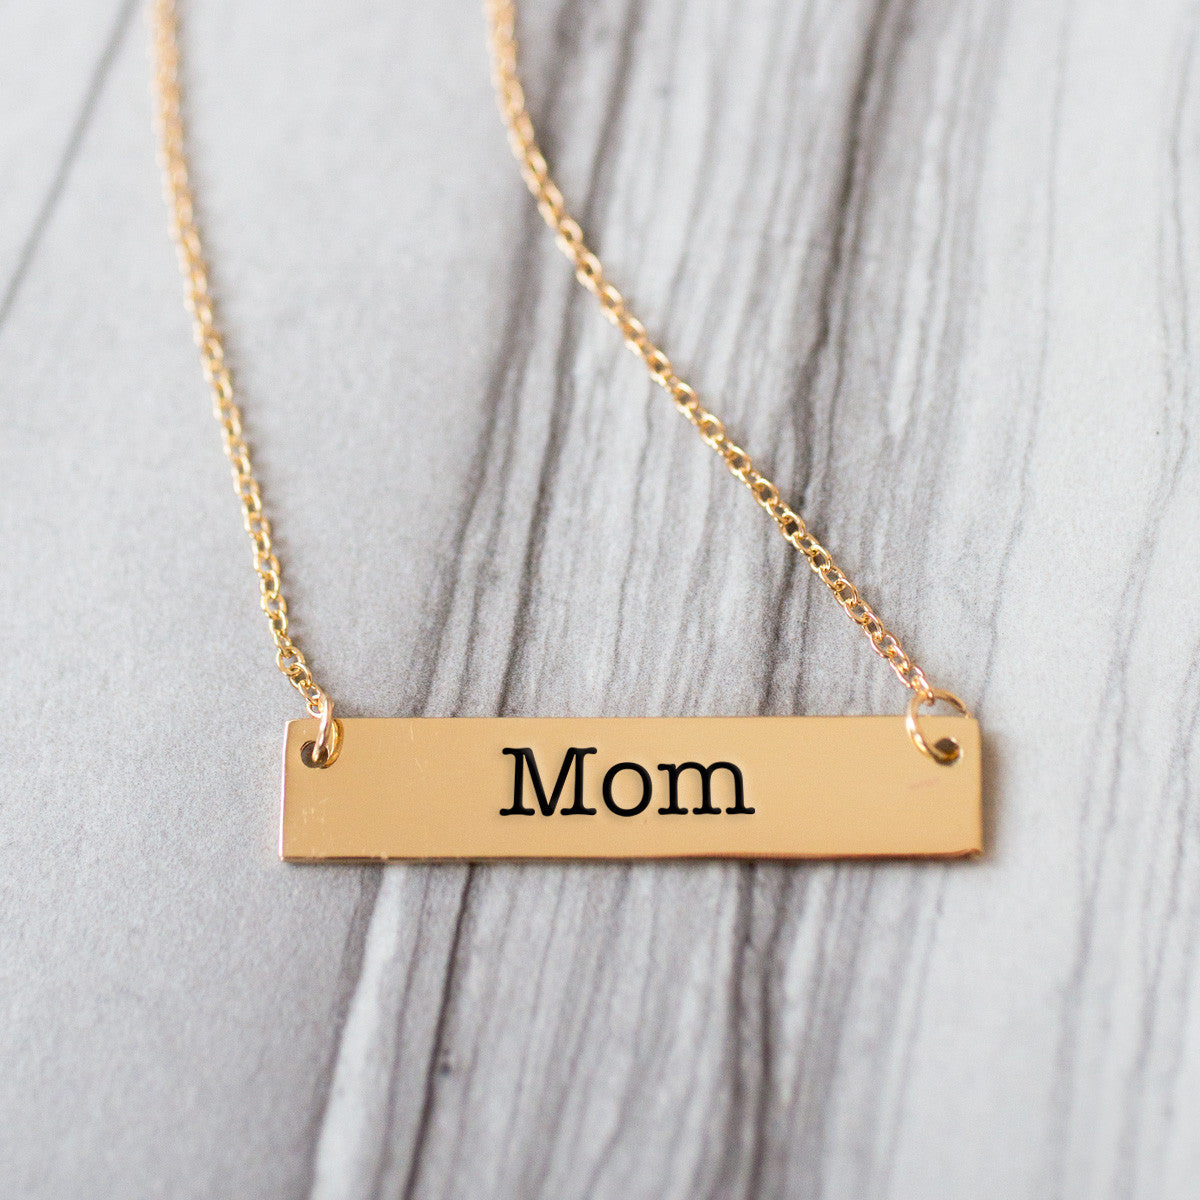 Mom Gold / Silver Bar Necklace